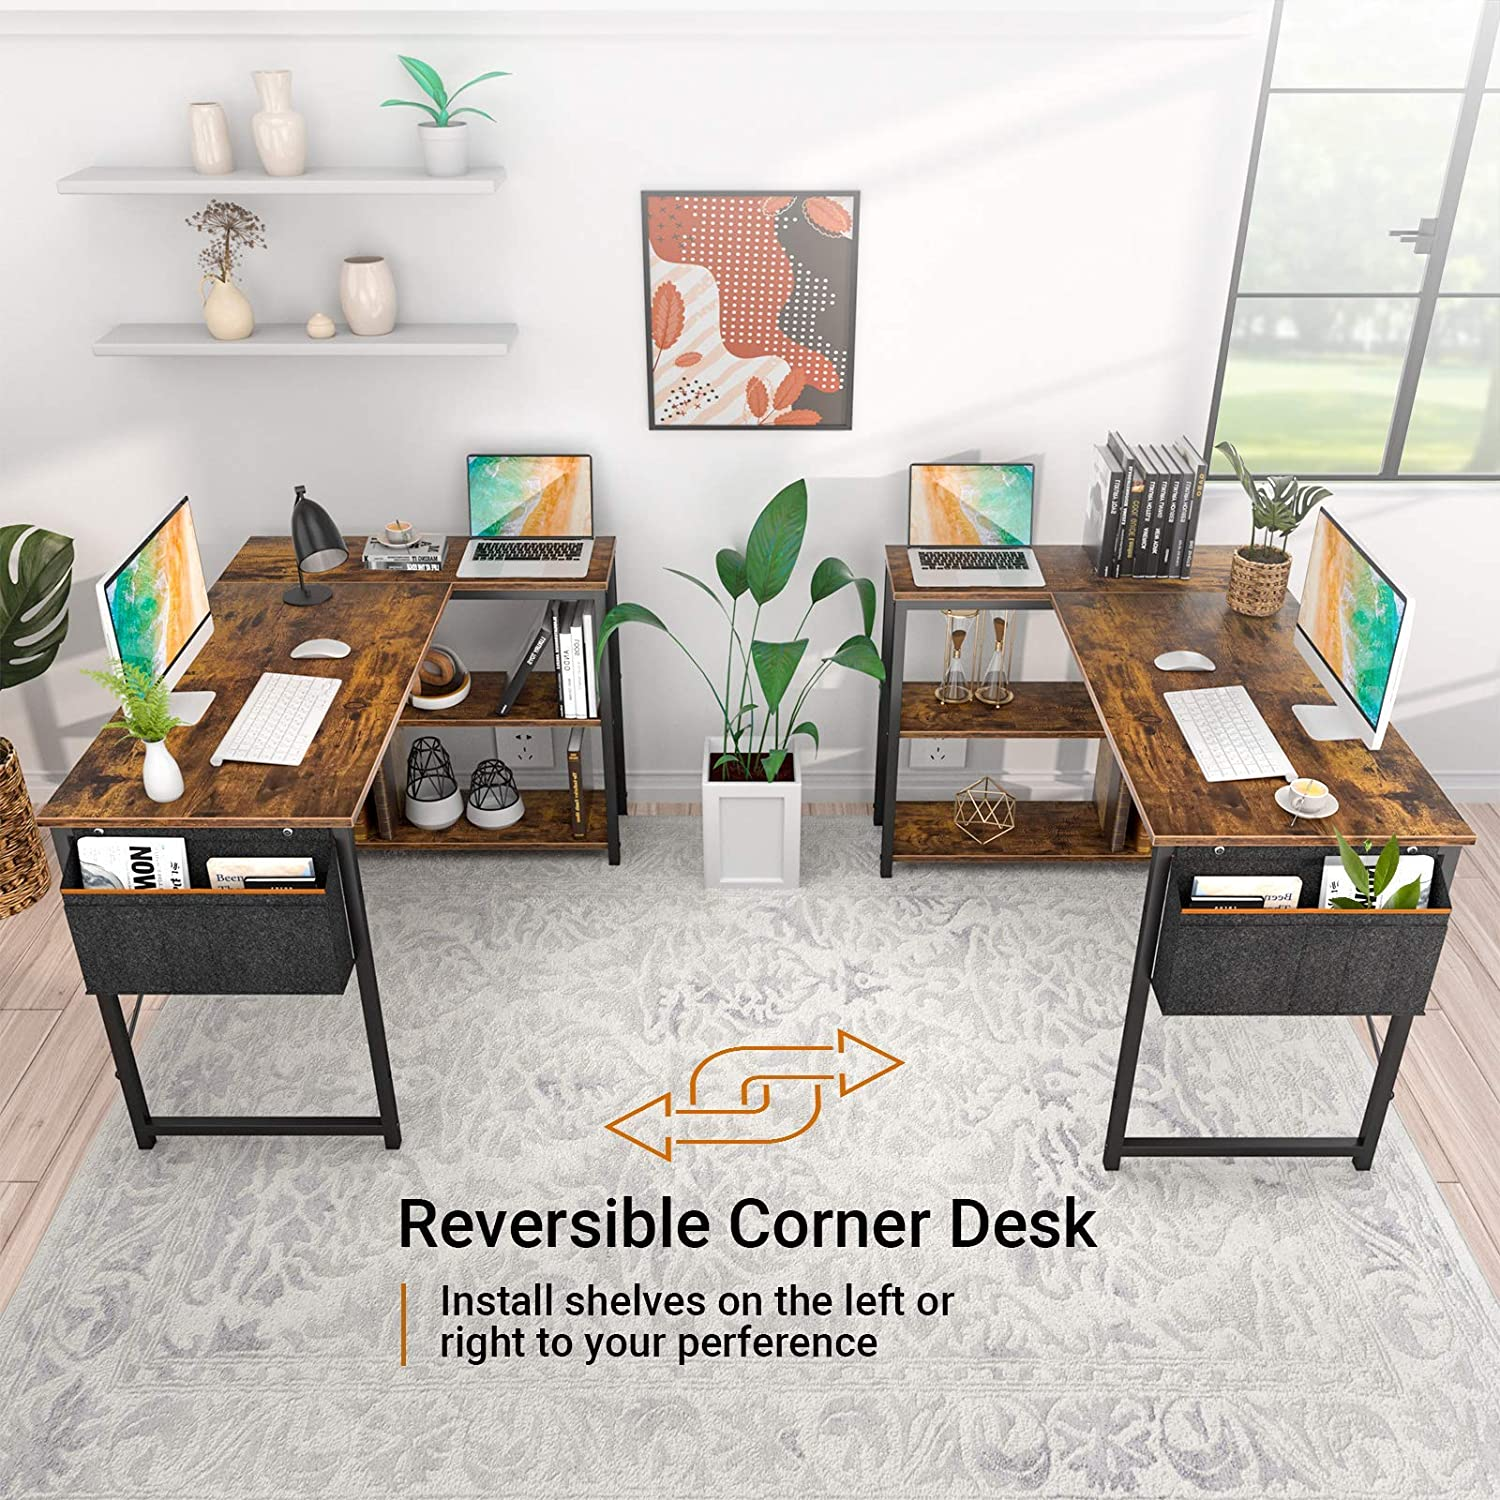 Small L Shaped Computer Desk, Homieasy 47 Inch L-Shaped Corner Desk with Reversible Storage Shelves for Home Office Workstation, Modern Simple Style Writing Desk Table with Storage Bag(Rustic Brown): Kitchen & Dining